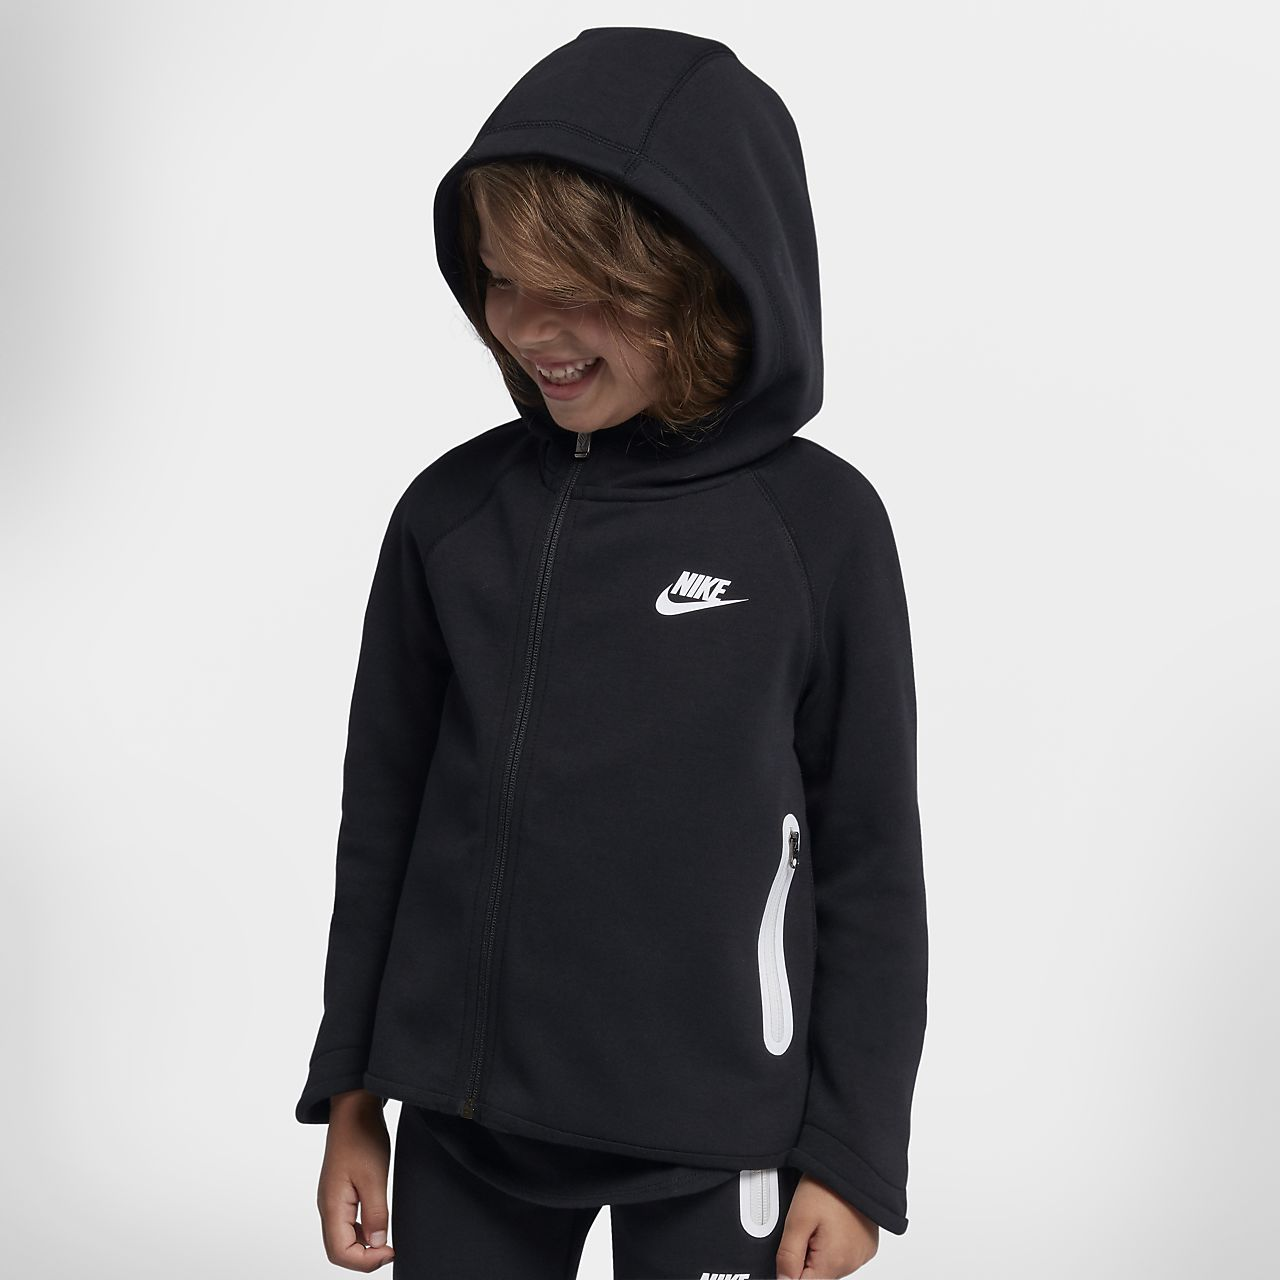 wide range high fashion top quality Nike Sportswear Tech Fleece Younger Kids' Full-Zip Hoodie